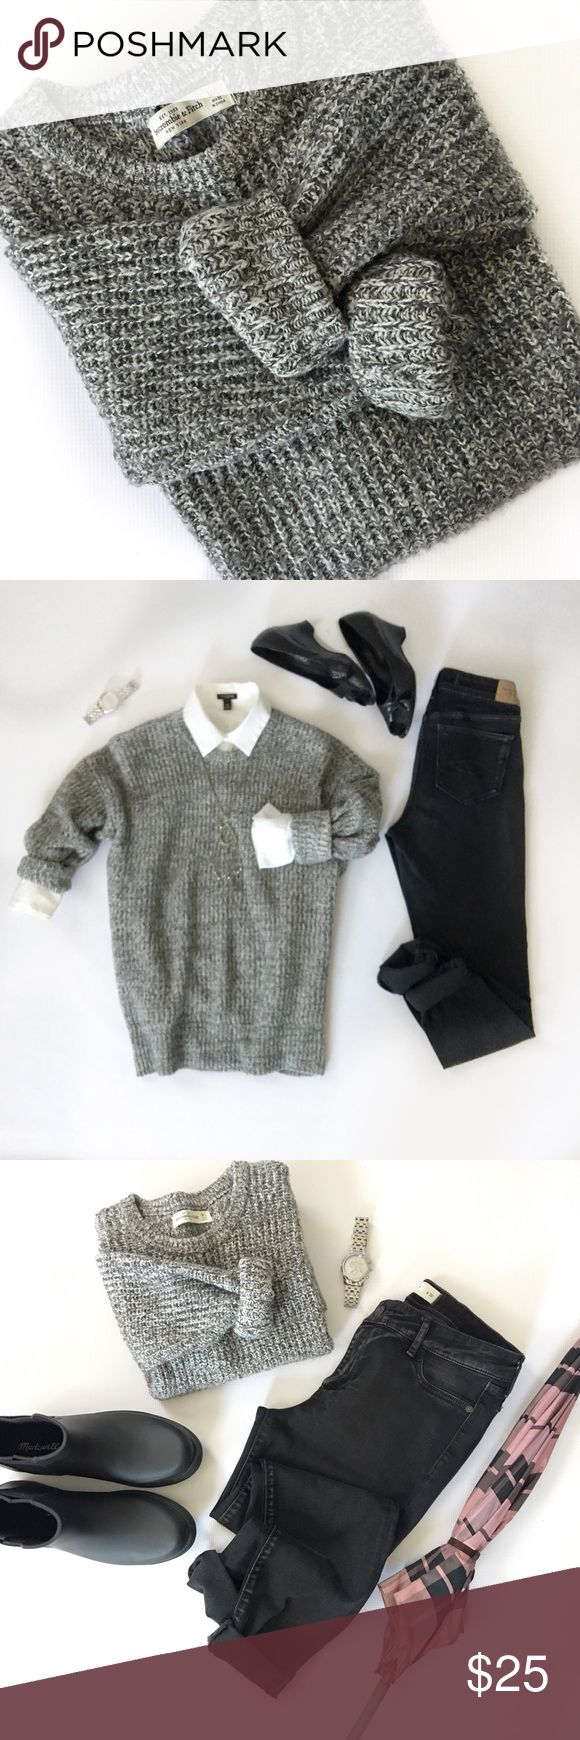 A&F Marled Sweater This beautiful black and white marled sweater is so soft and comfortable and has a nice amount of stretch. Excellent pre-loved condition. Pet free/Smoke free. Abercrombie & Fitch Sweaters Crew & Scoop Necks